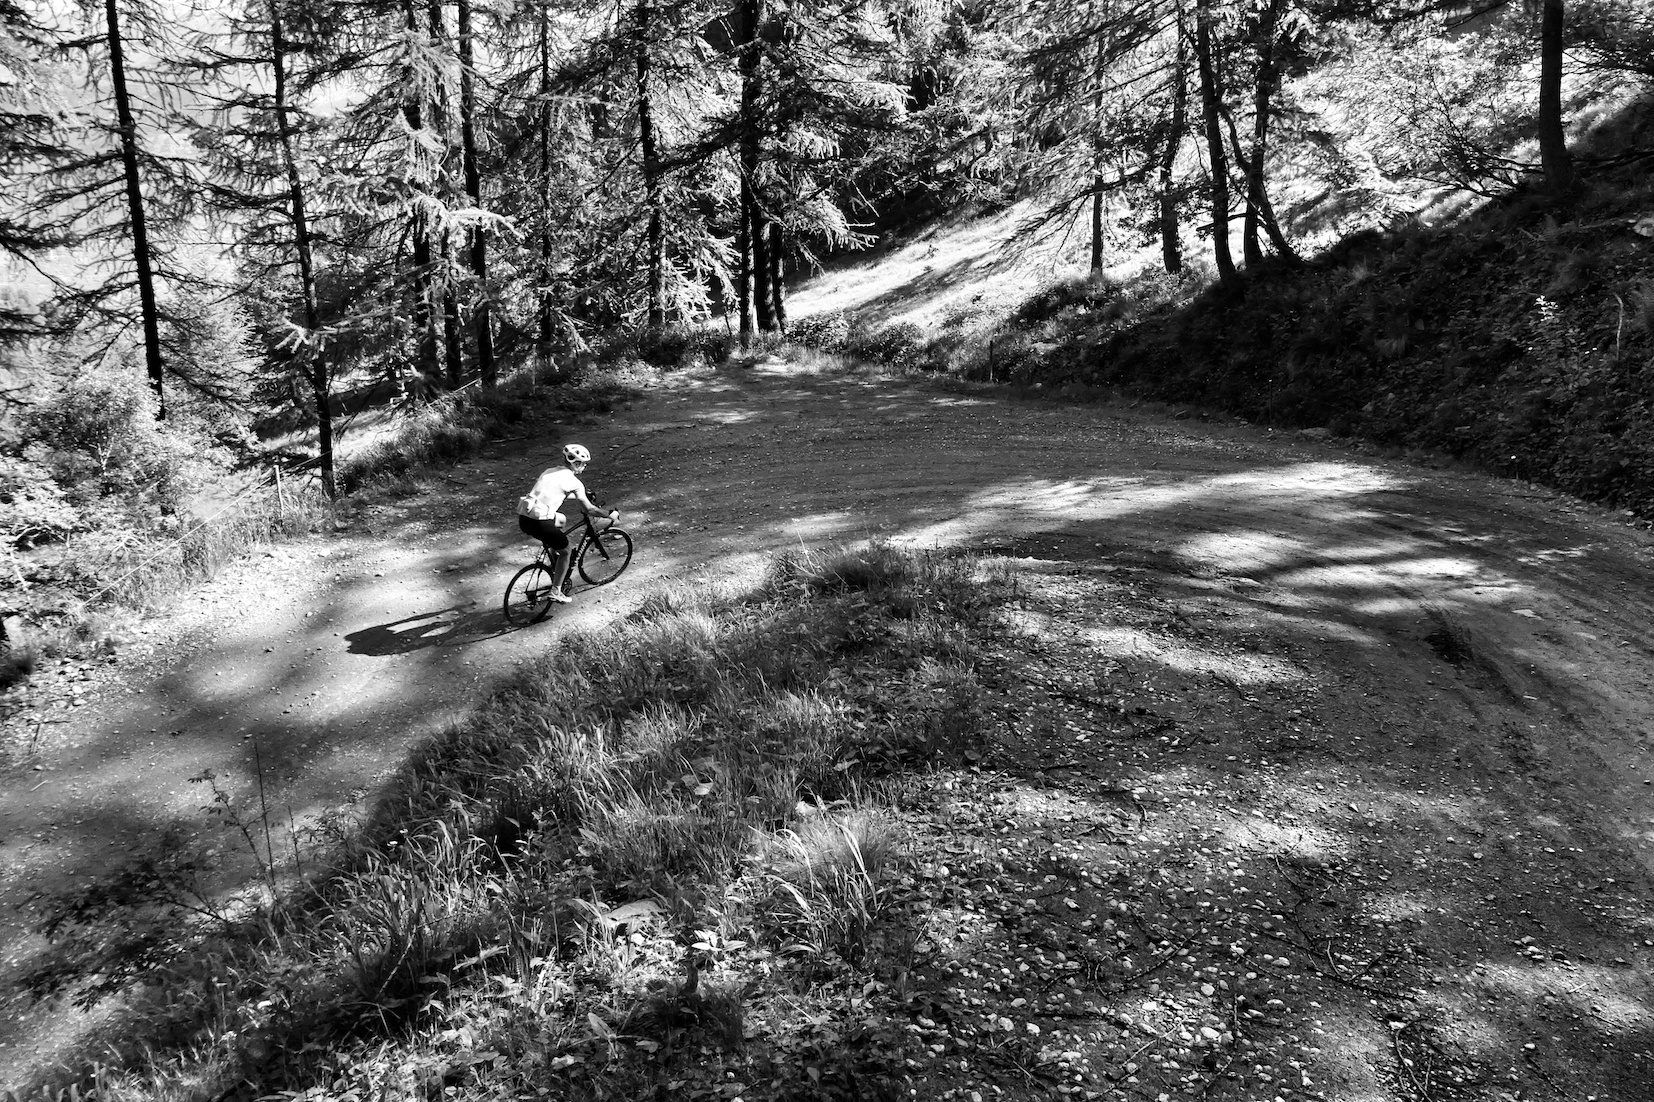 SGL, early on in the gravel section of the Finestre